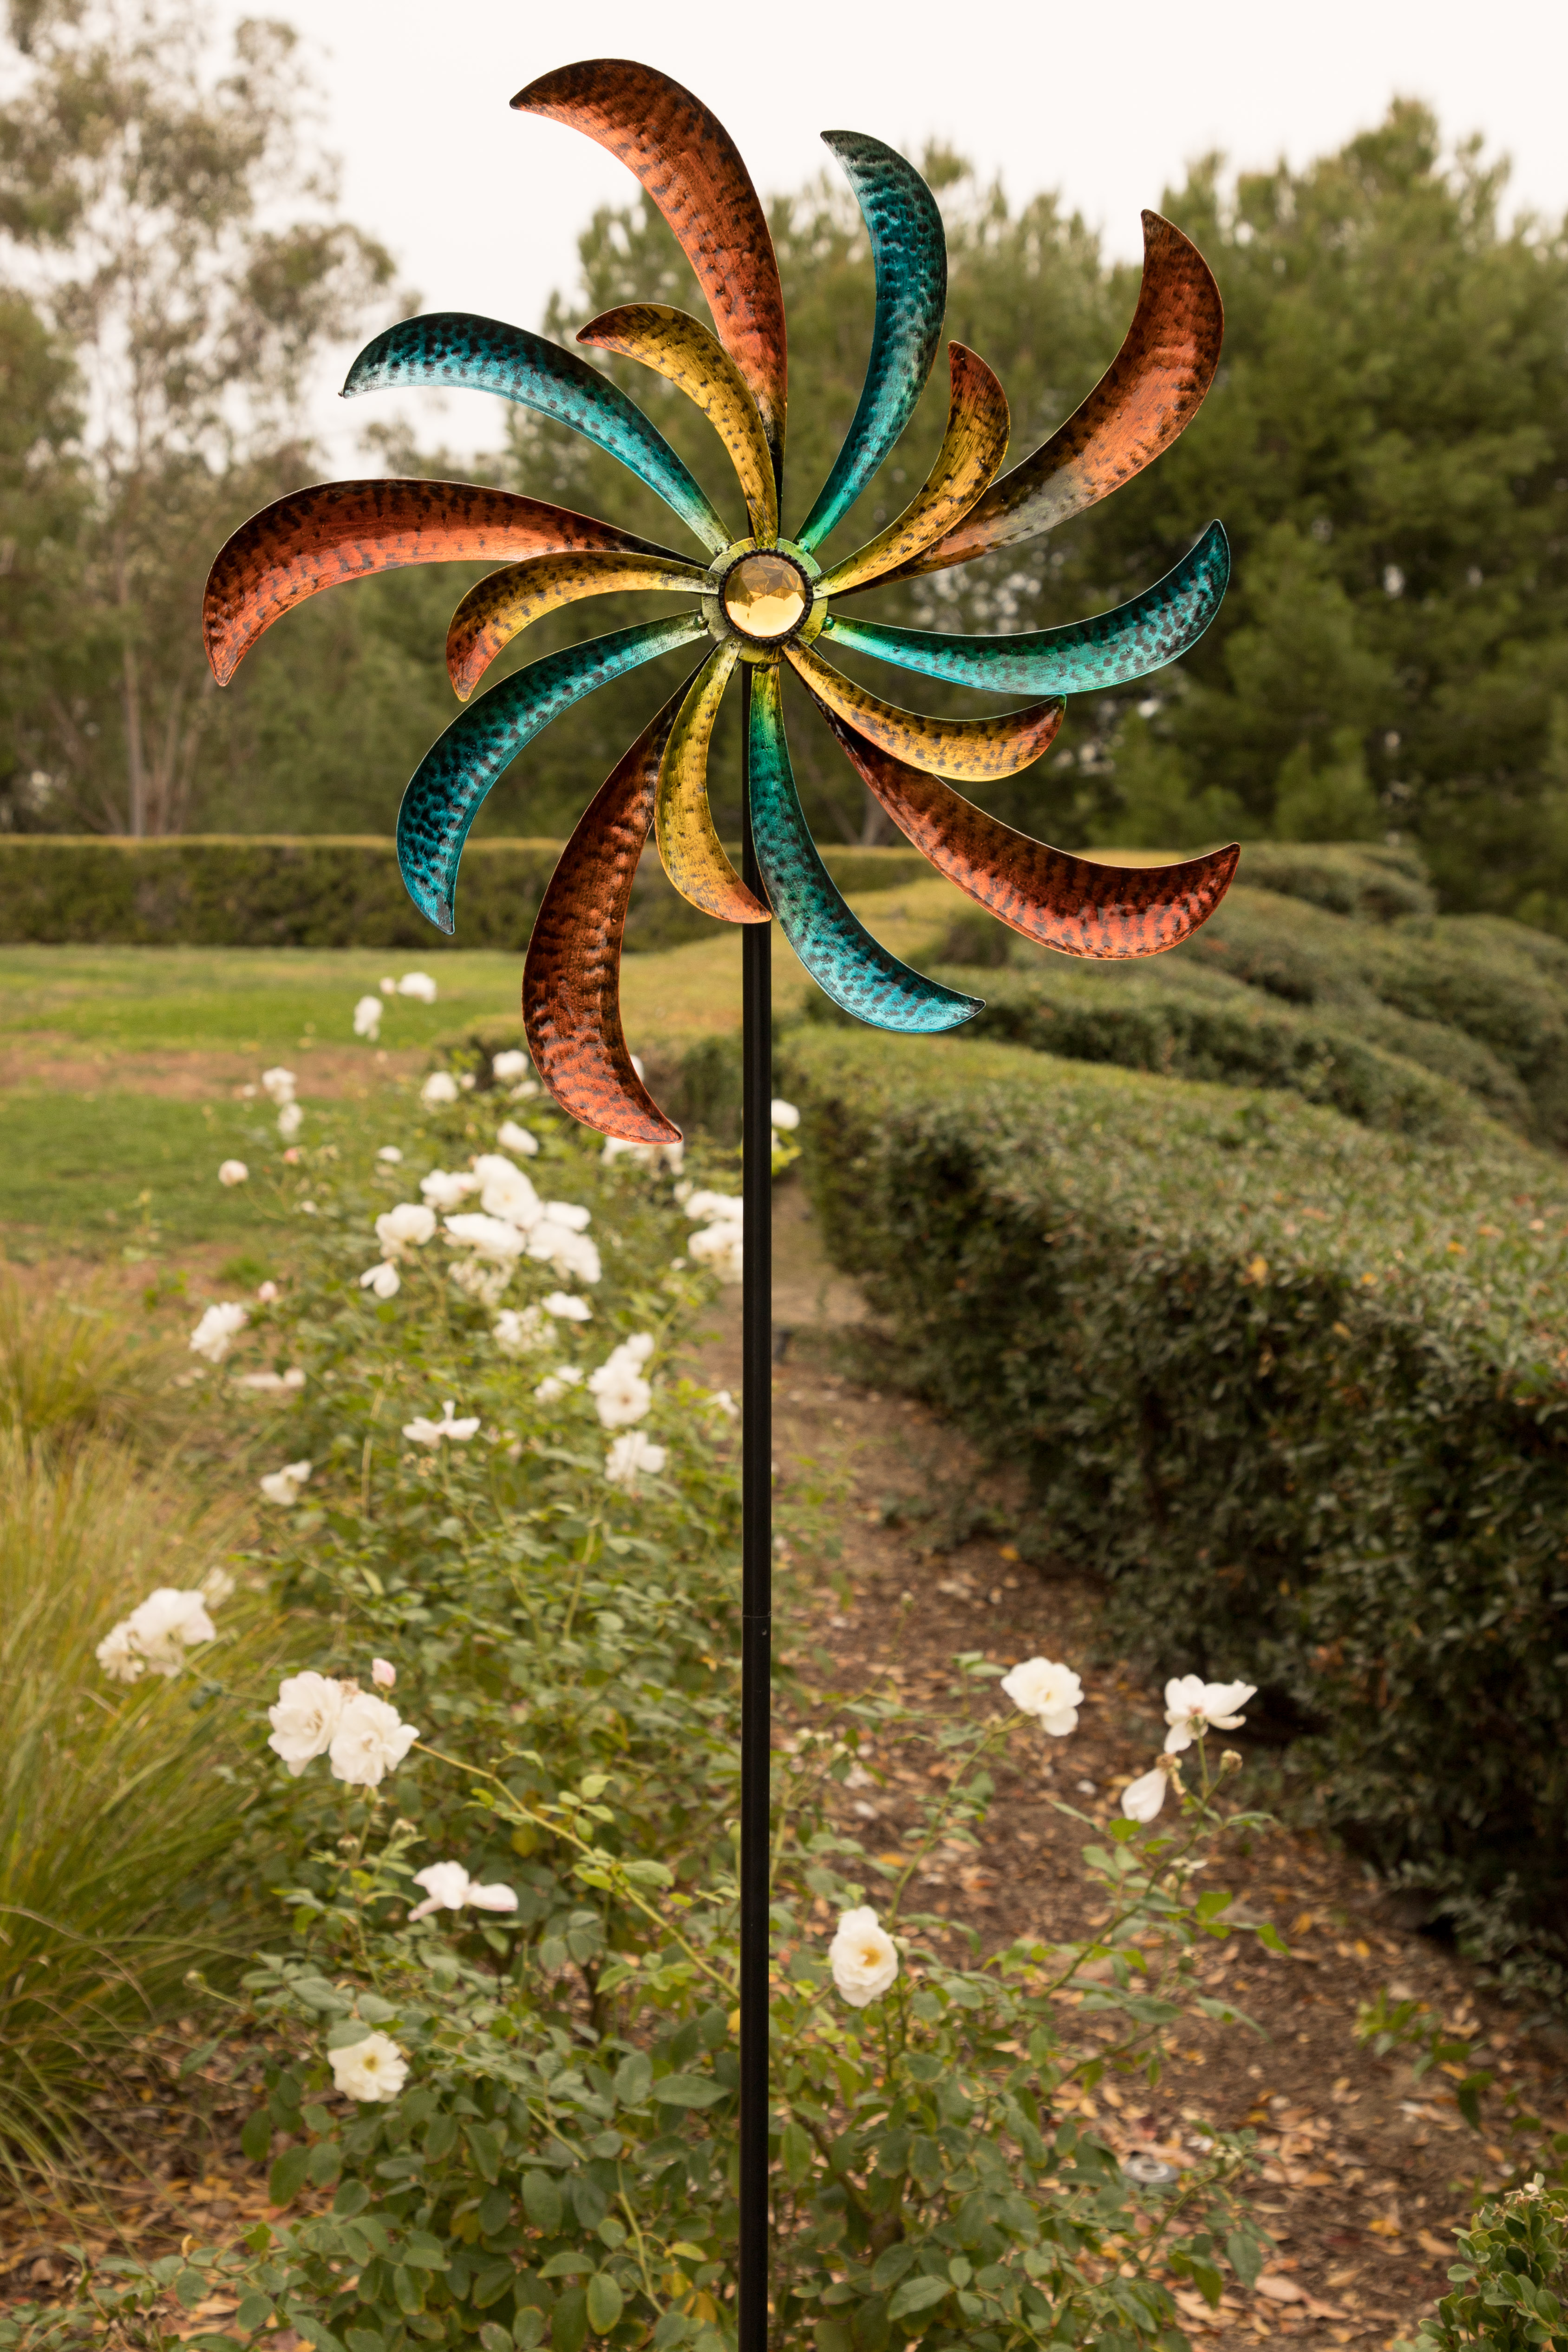 Alpine Colorful Swirl Kinetic Wind Spinner Garden Stake, 64 Inch Tall by Alpine Corporation